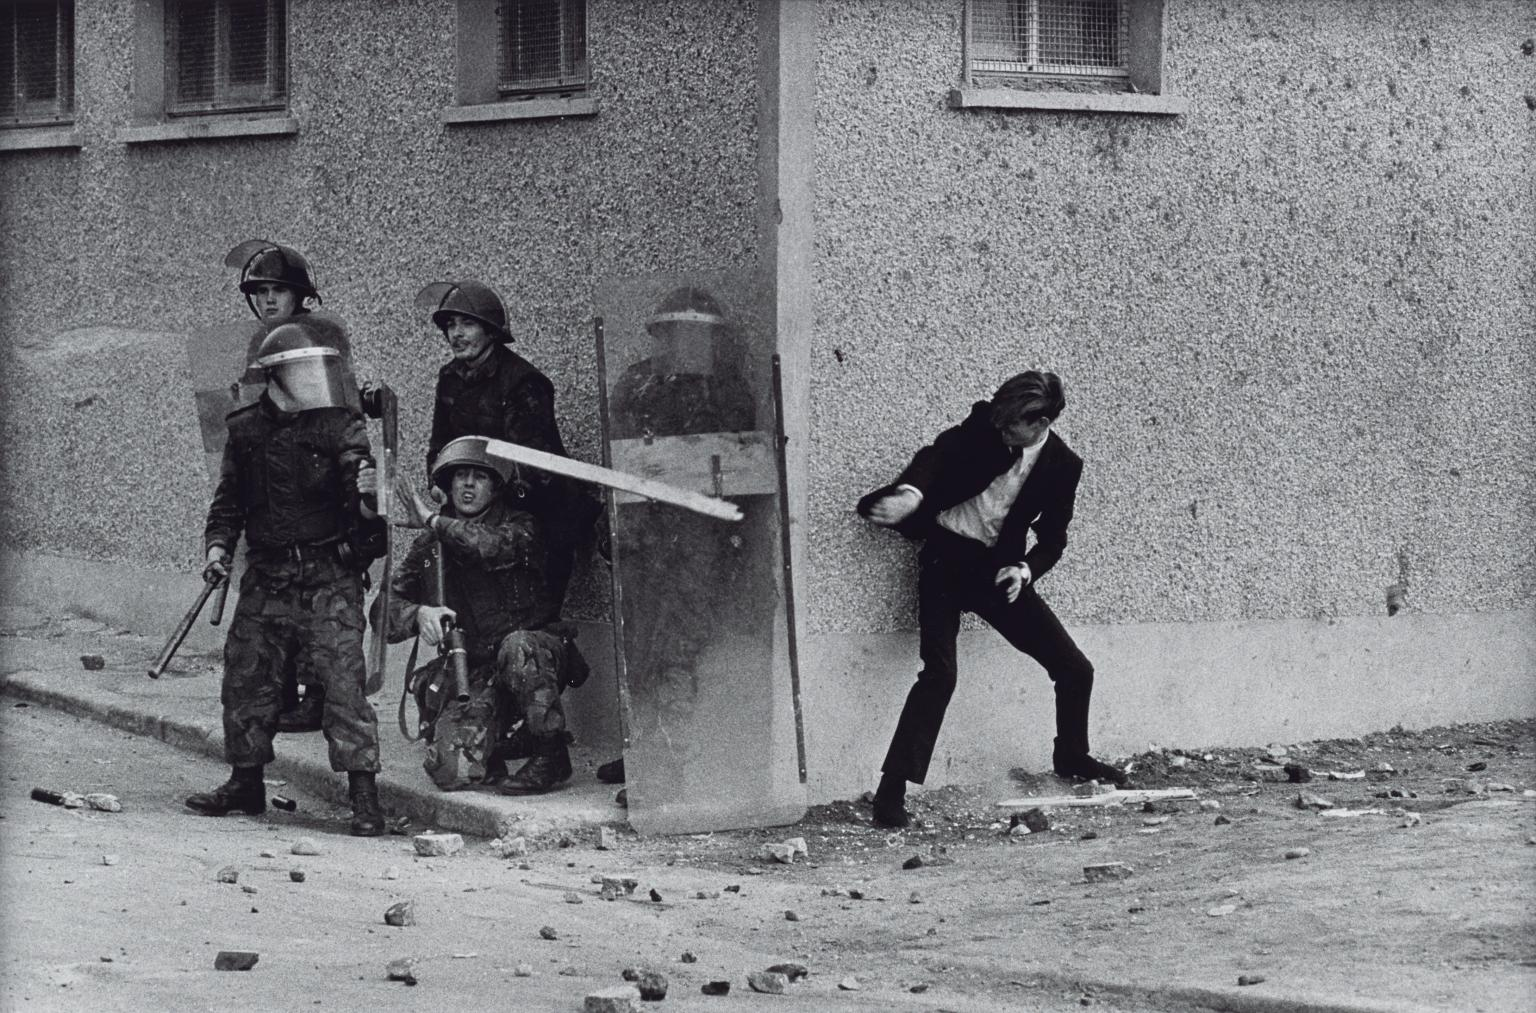 The Bogside, Londonderry, Northern Ireland 1971, printed 2013 by Don McCullin born 1935